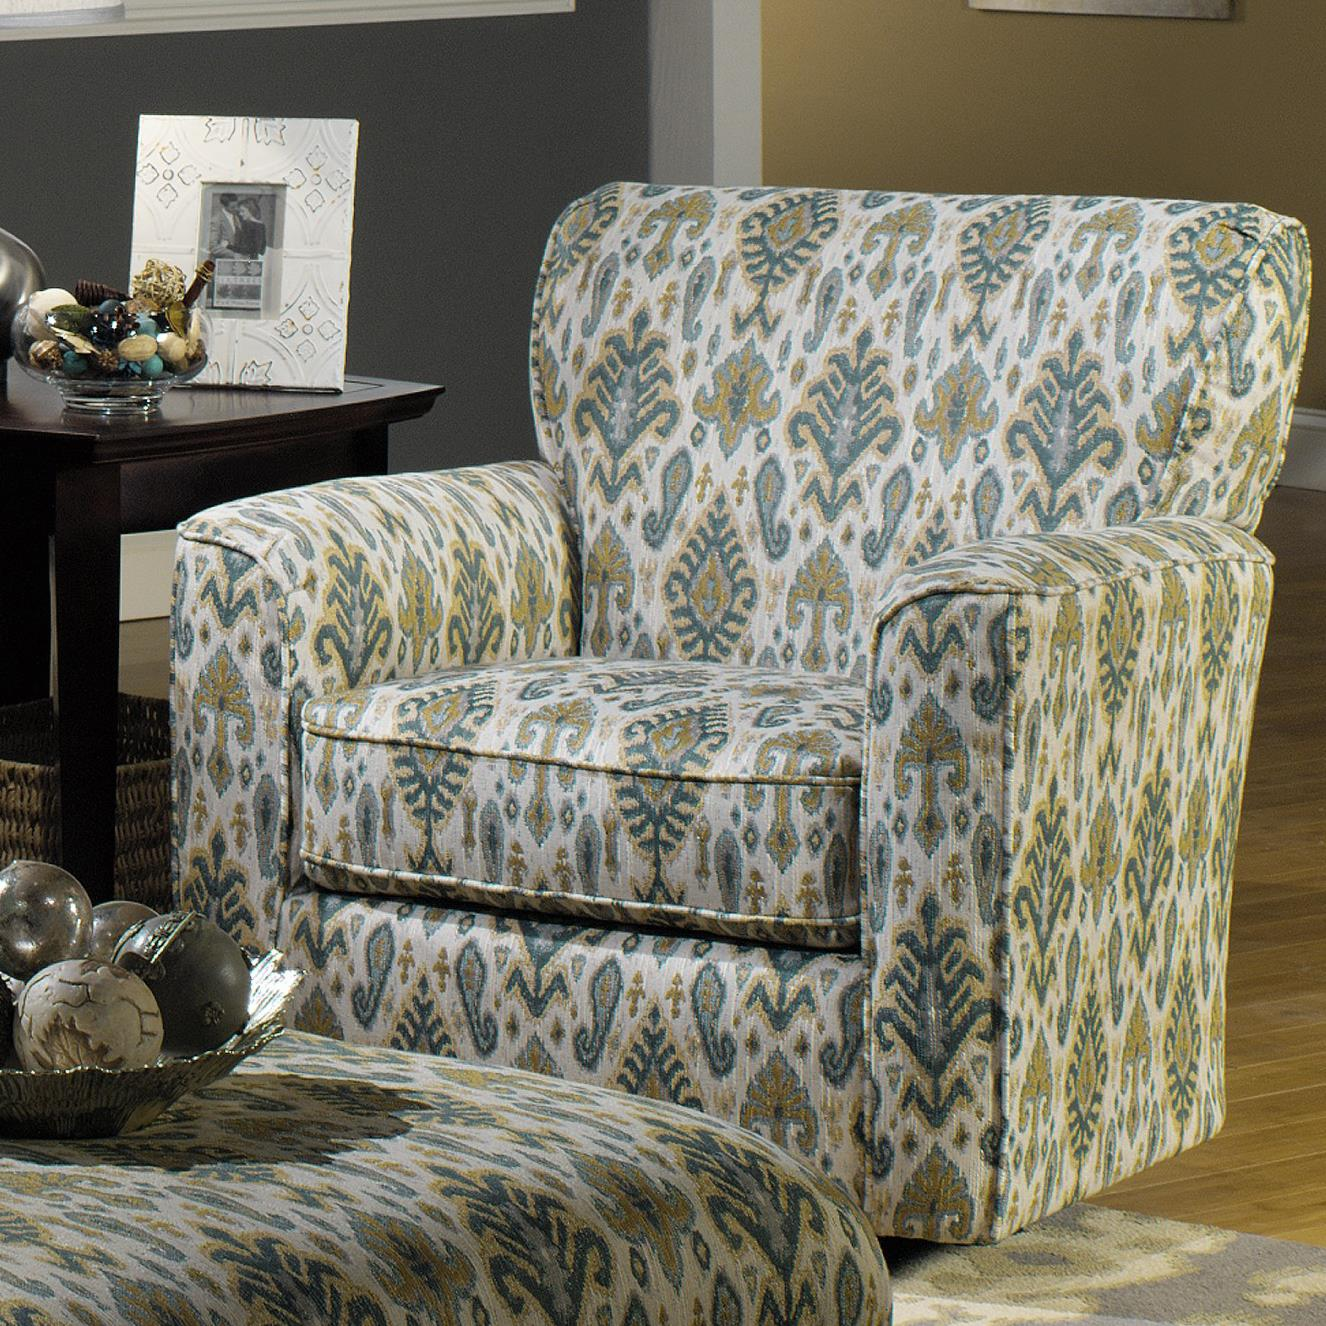 Craftmaster accent chairs contemporary upholstered swivel - Modern upholstered living room chairs ...